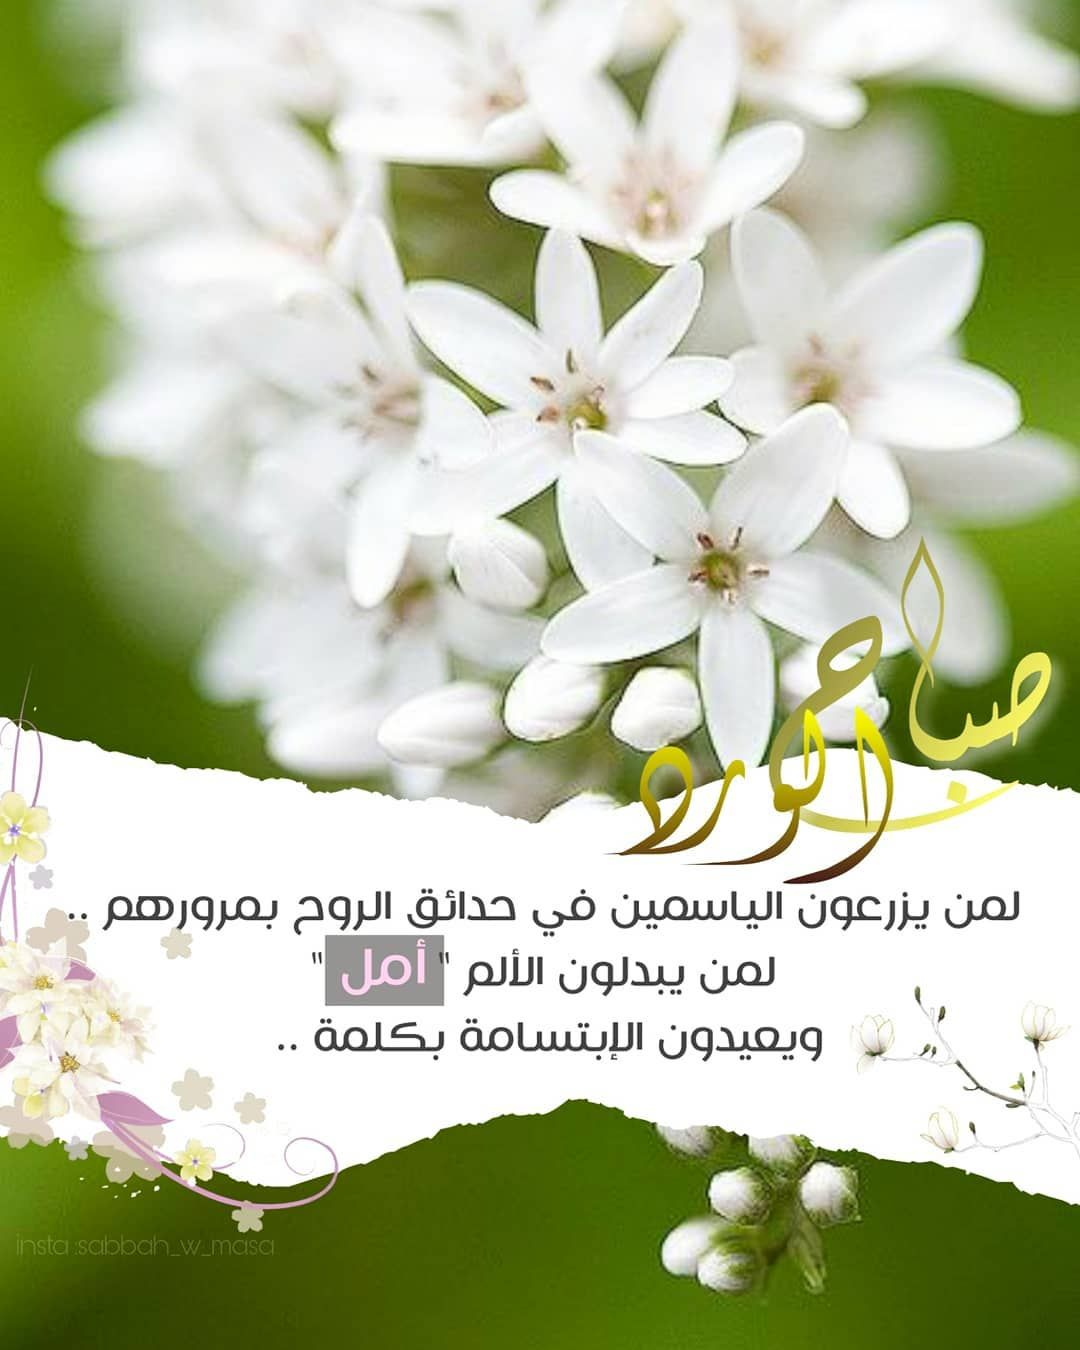 Sabbah W Masa Shared A Photo On Instagram صباح الورد لمن يزرعون الياسمين في حدائق الروح Morning Greeting Morning Images Jumma Mubarak Images